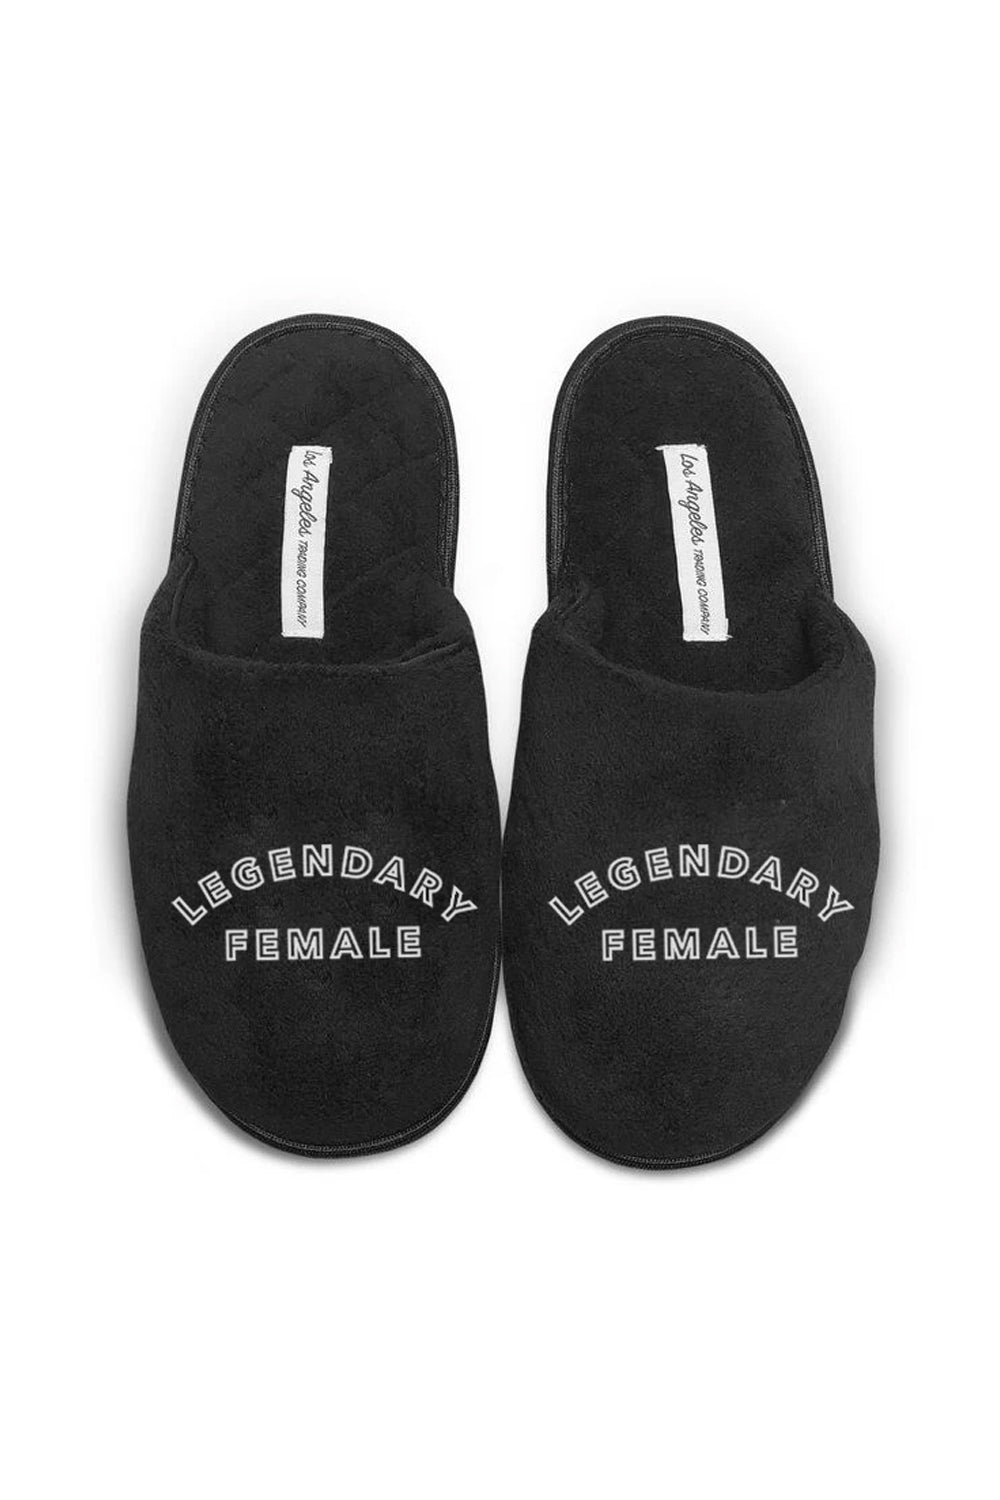 SLIPPERS- Legendary Female